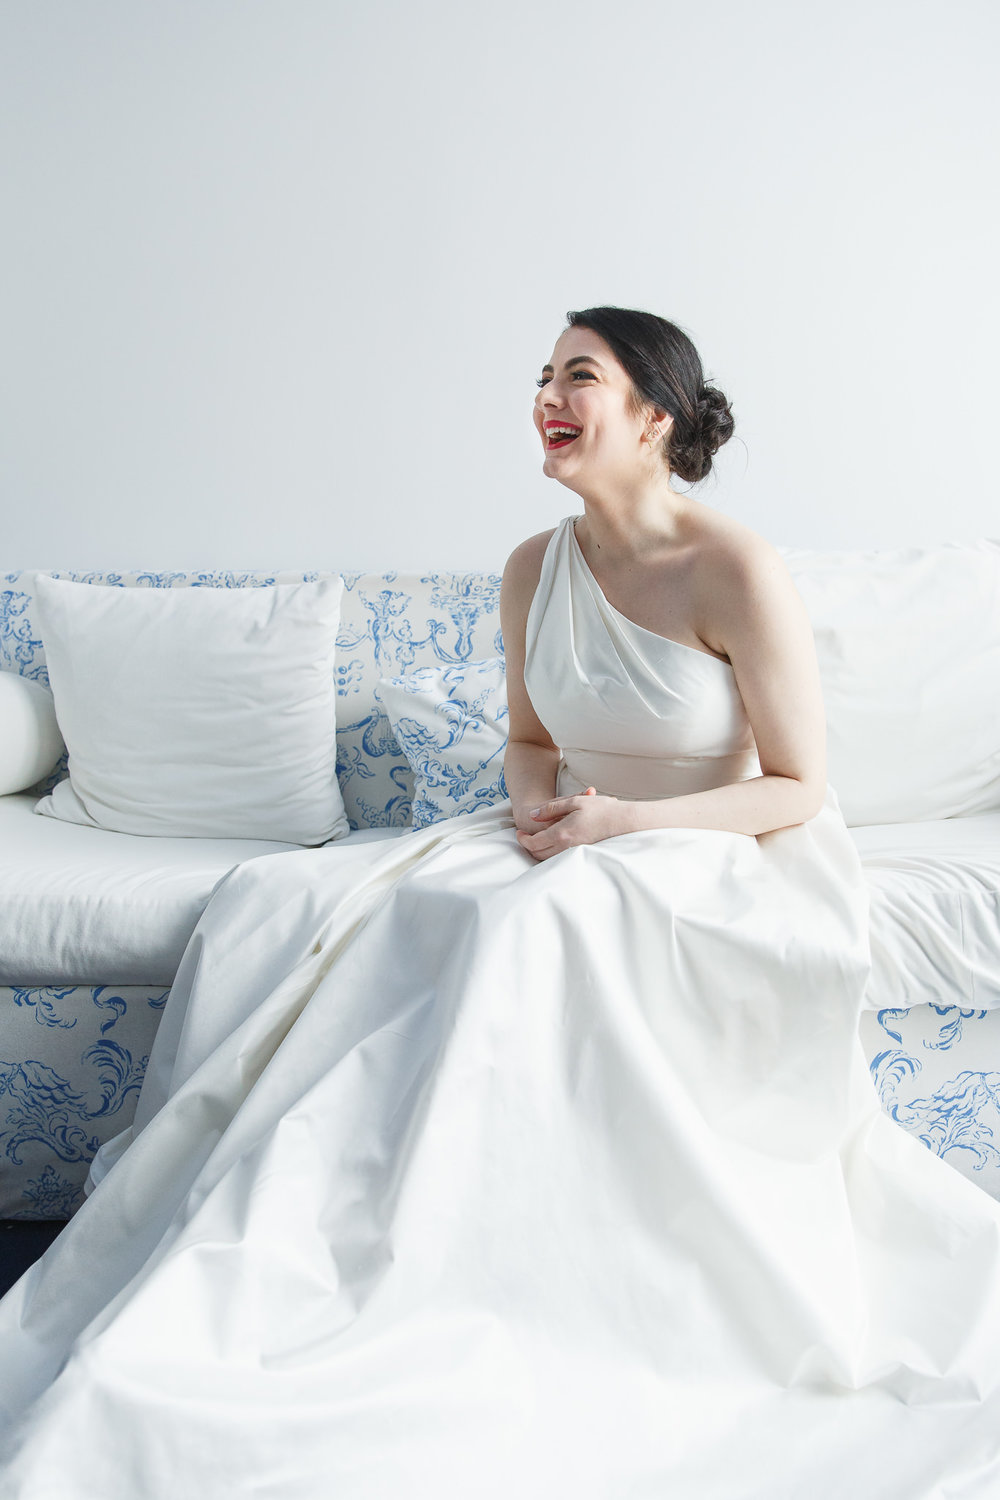 Bride laughs on a blue and white couch waiting to meet her soon-to-be husband for their first look.